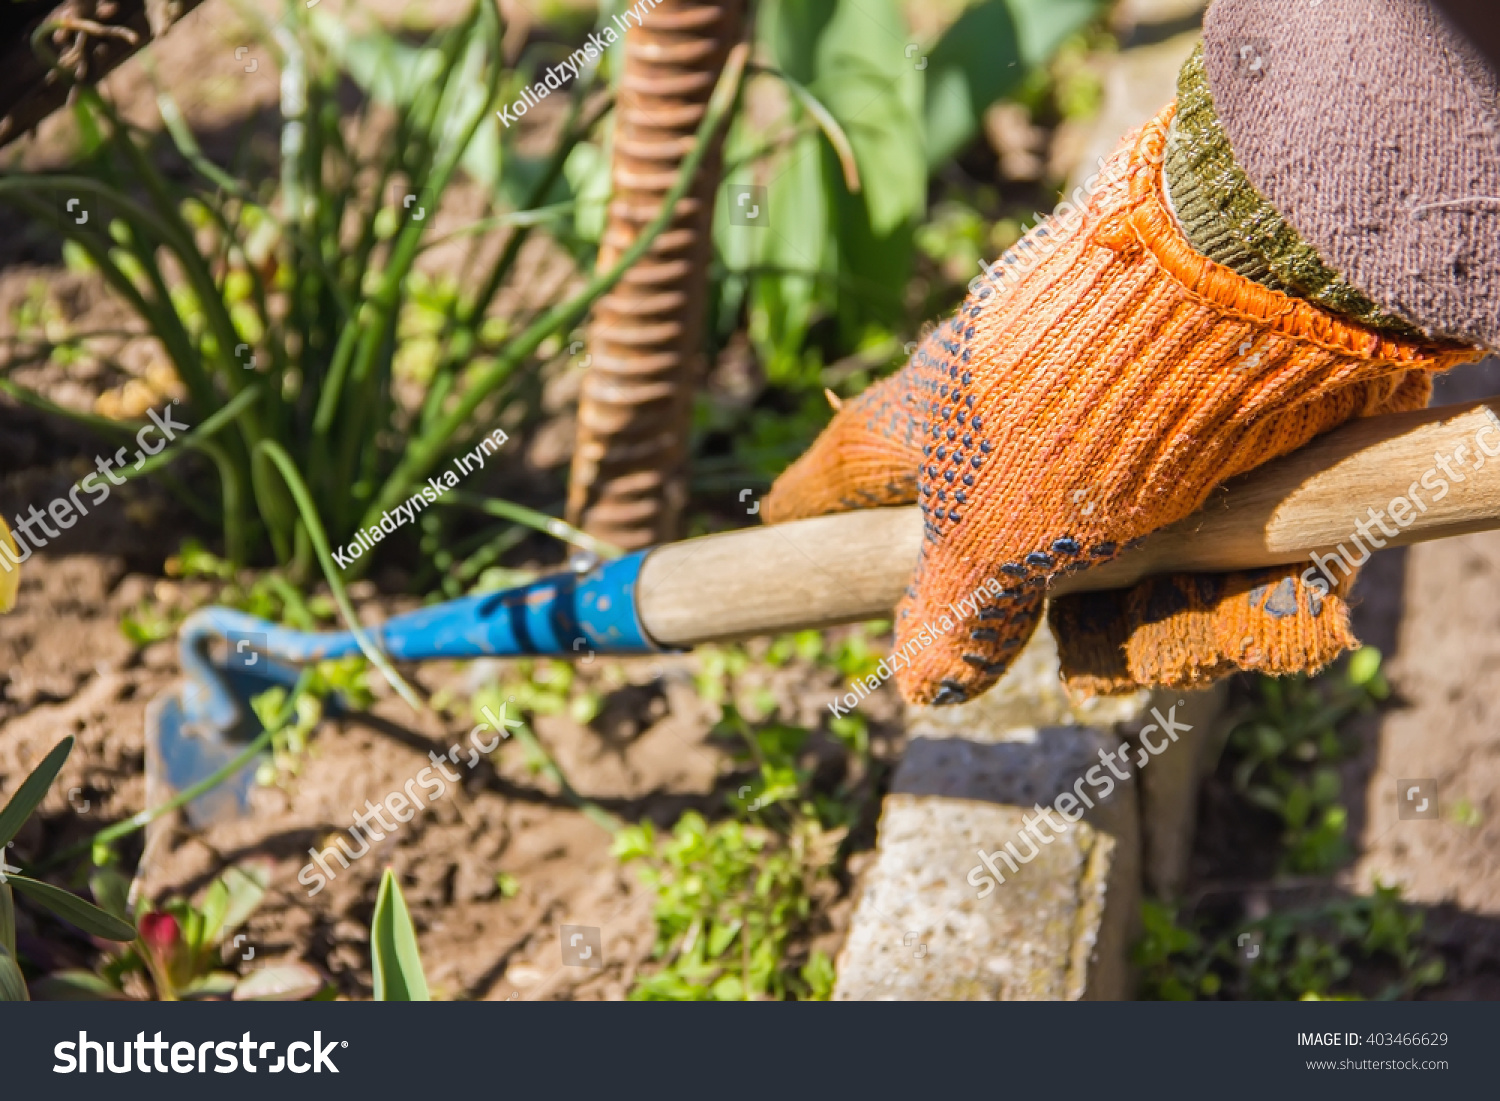 Online image photo editor shutterstock editor - Gardening works in october winter preparations ...